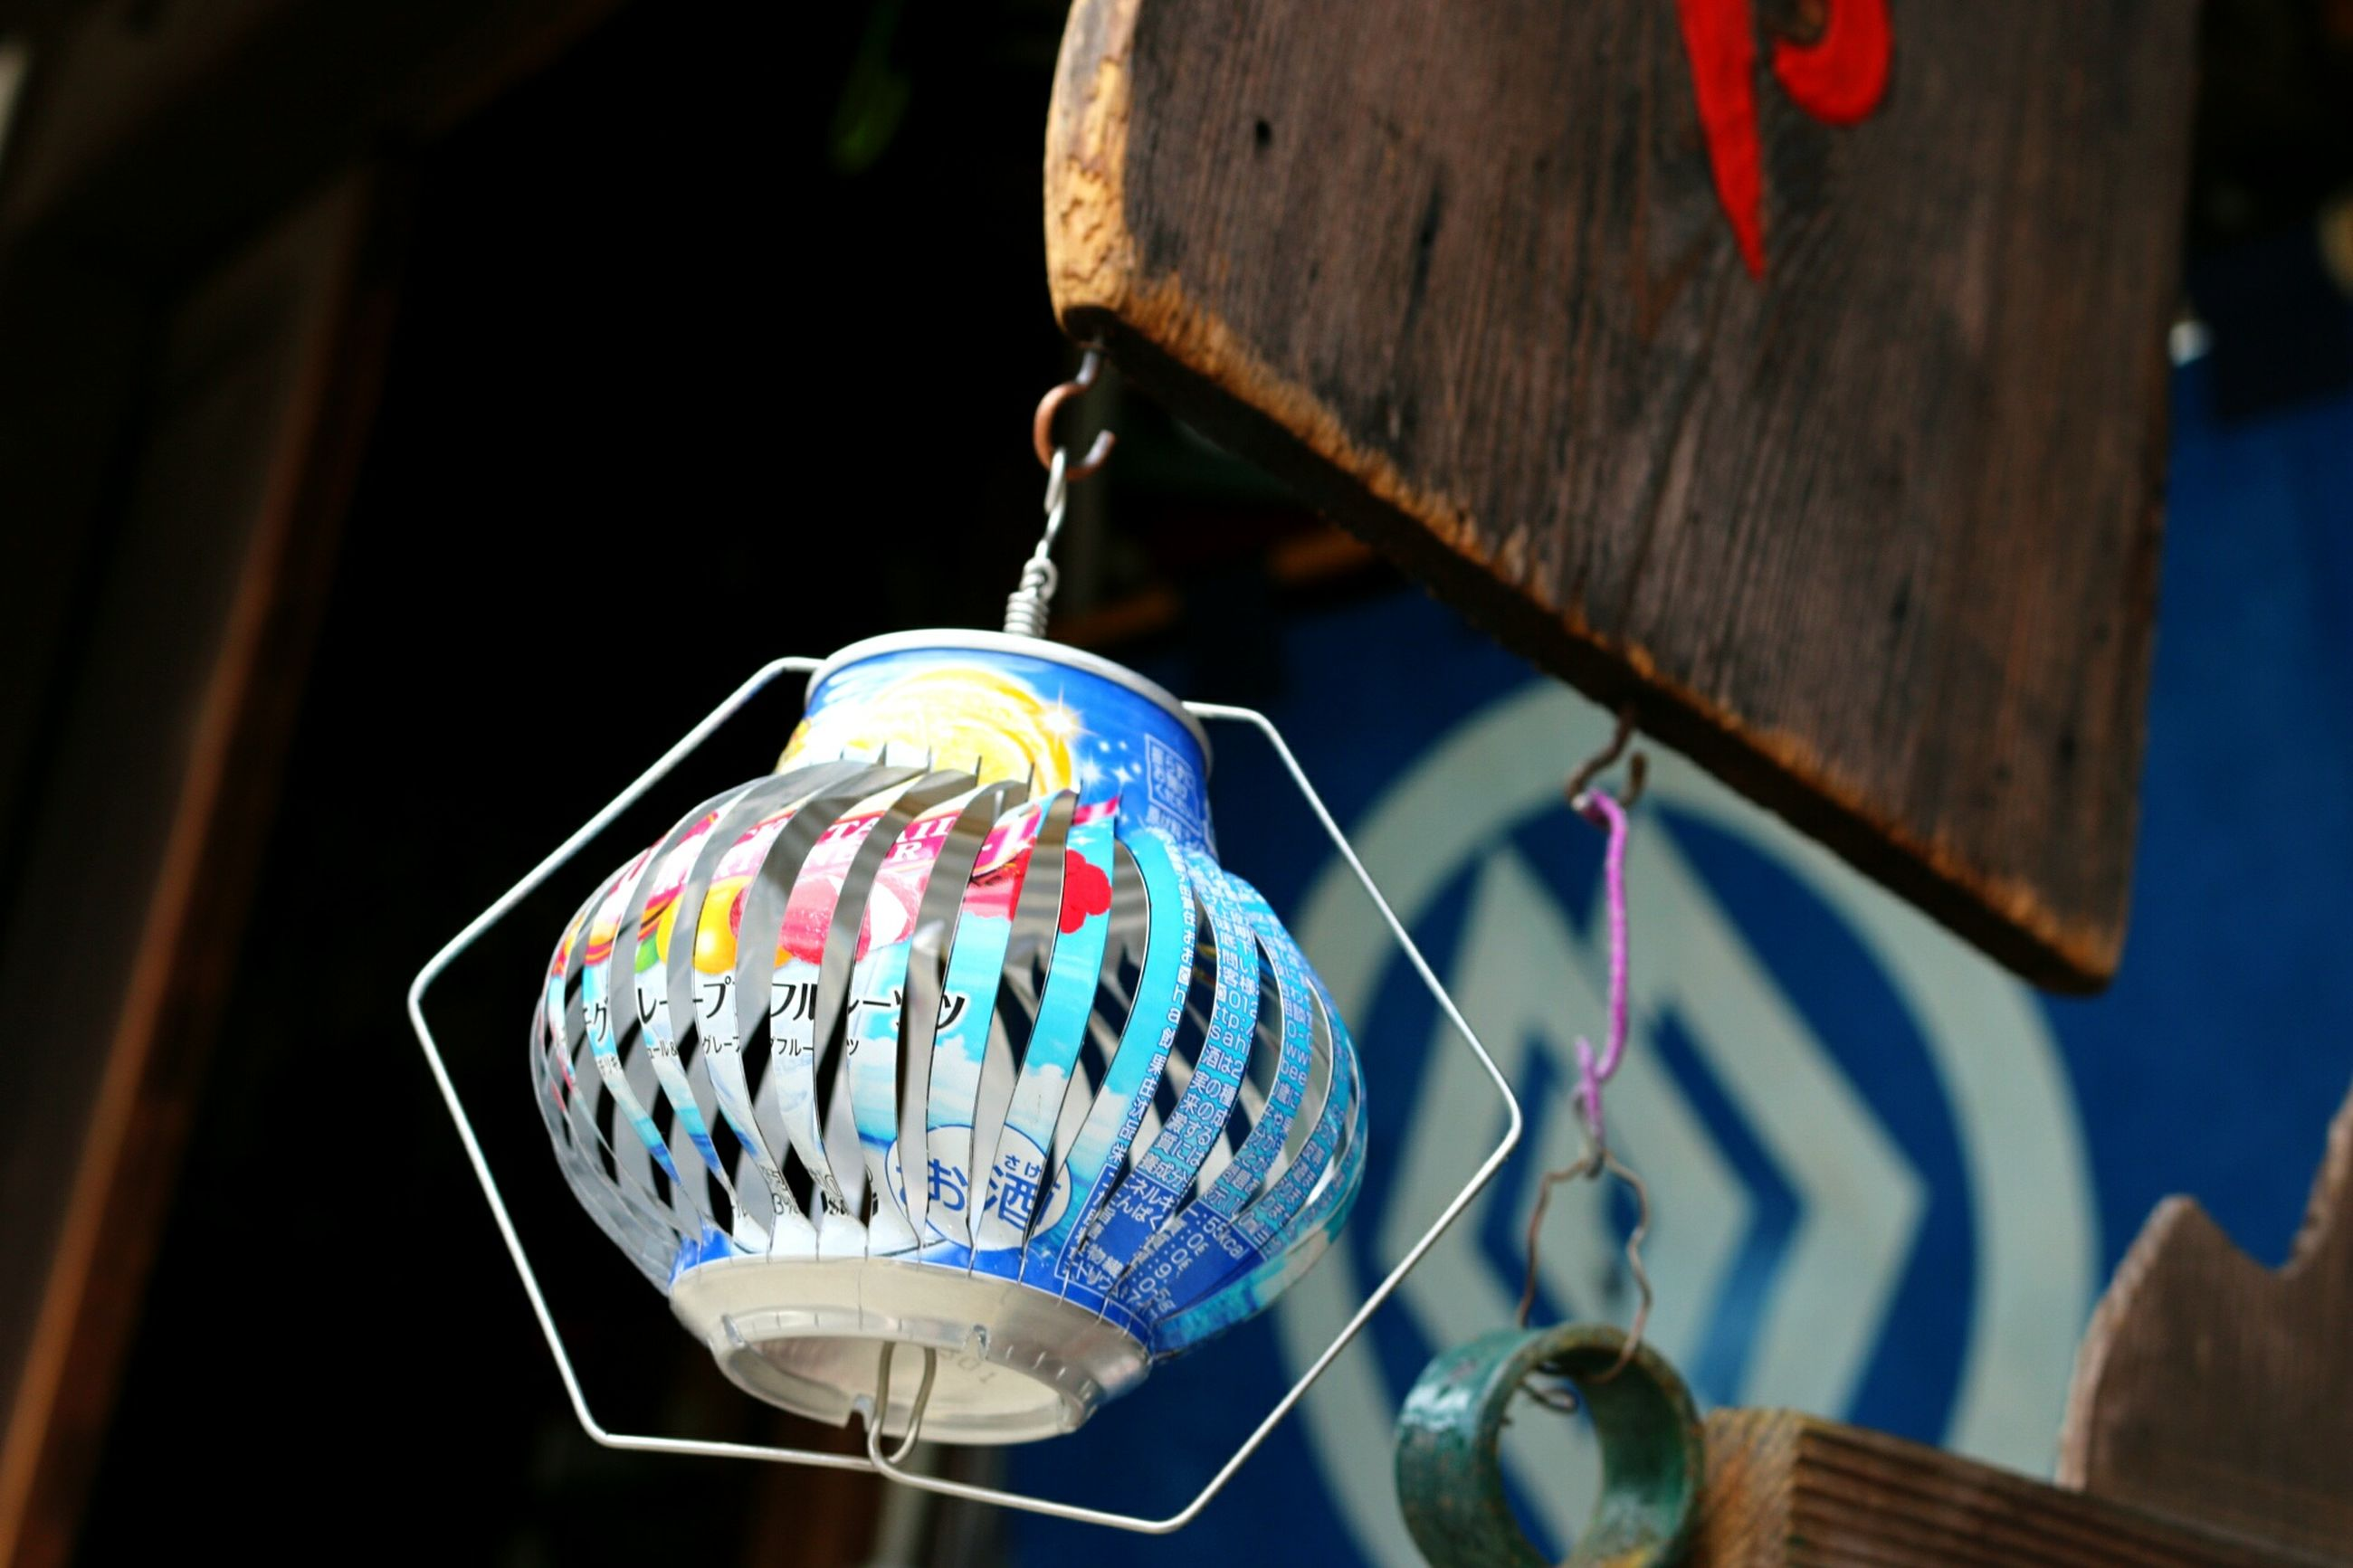 indoors, hanging, multi colored, still life, decoration, close-up, focus on foreground, table, lantern, wood - material, no people, blue, illuminated, colorful, low angle view, celebration, lighting equipment, selective focus, art and craft, home interior